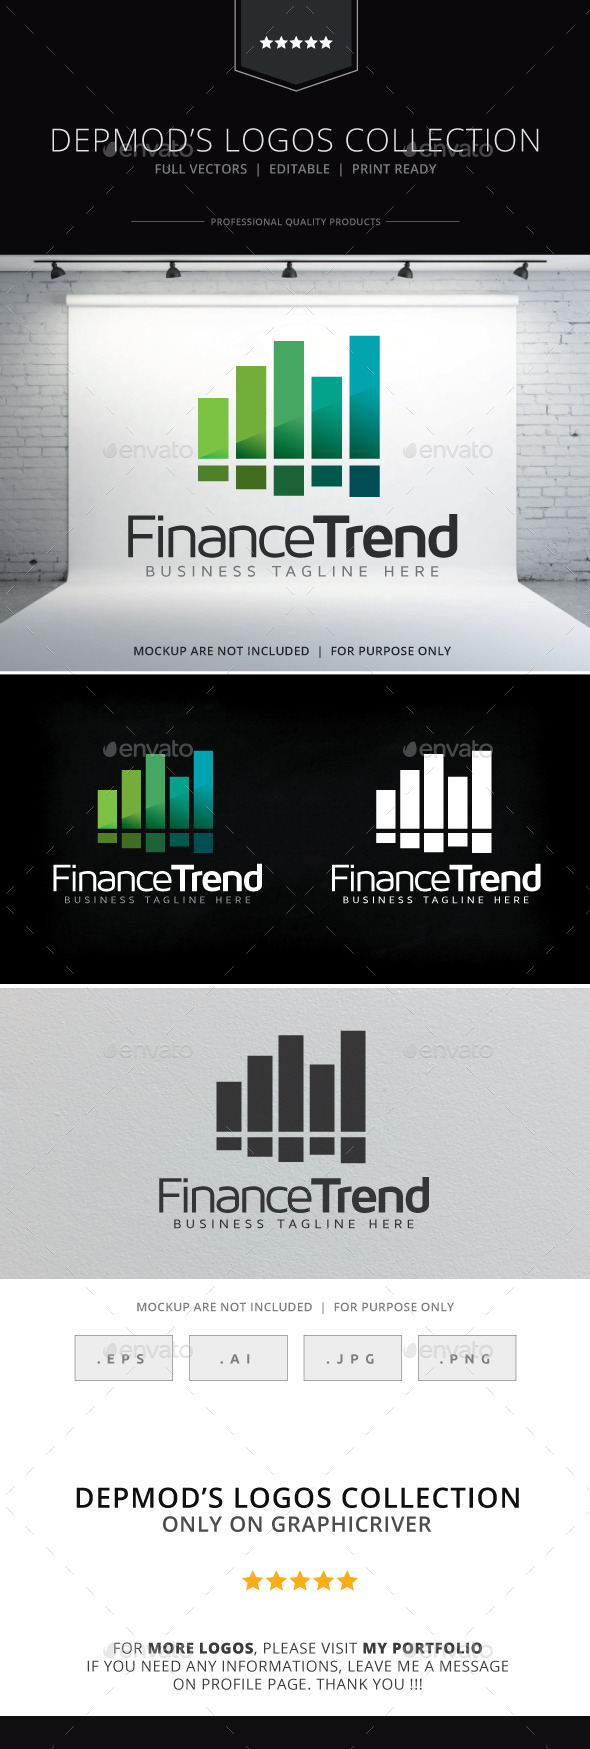 GraphicRiver Finance Trend Logo 9255537